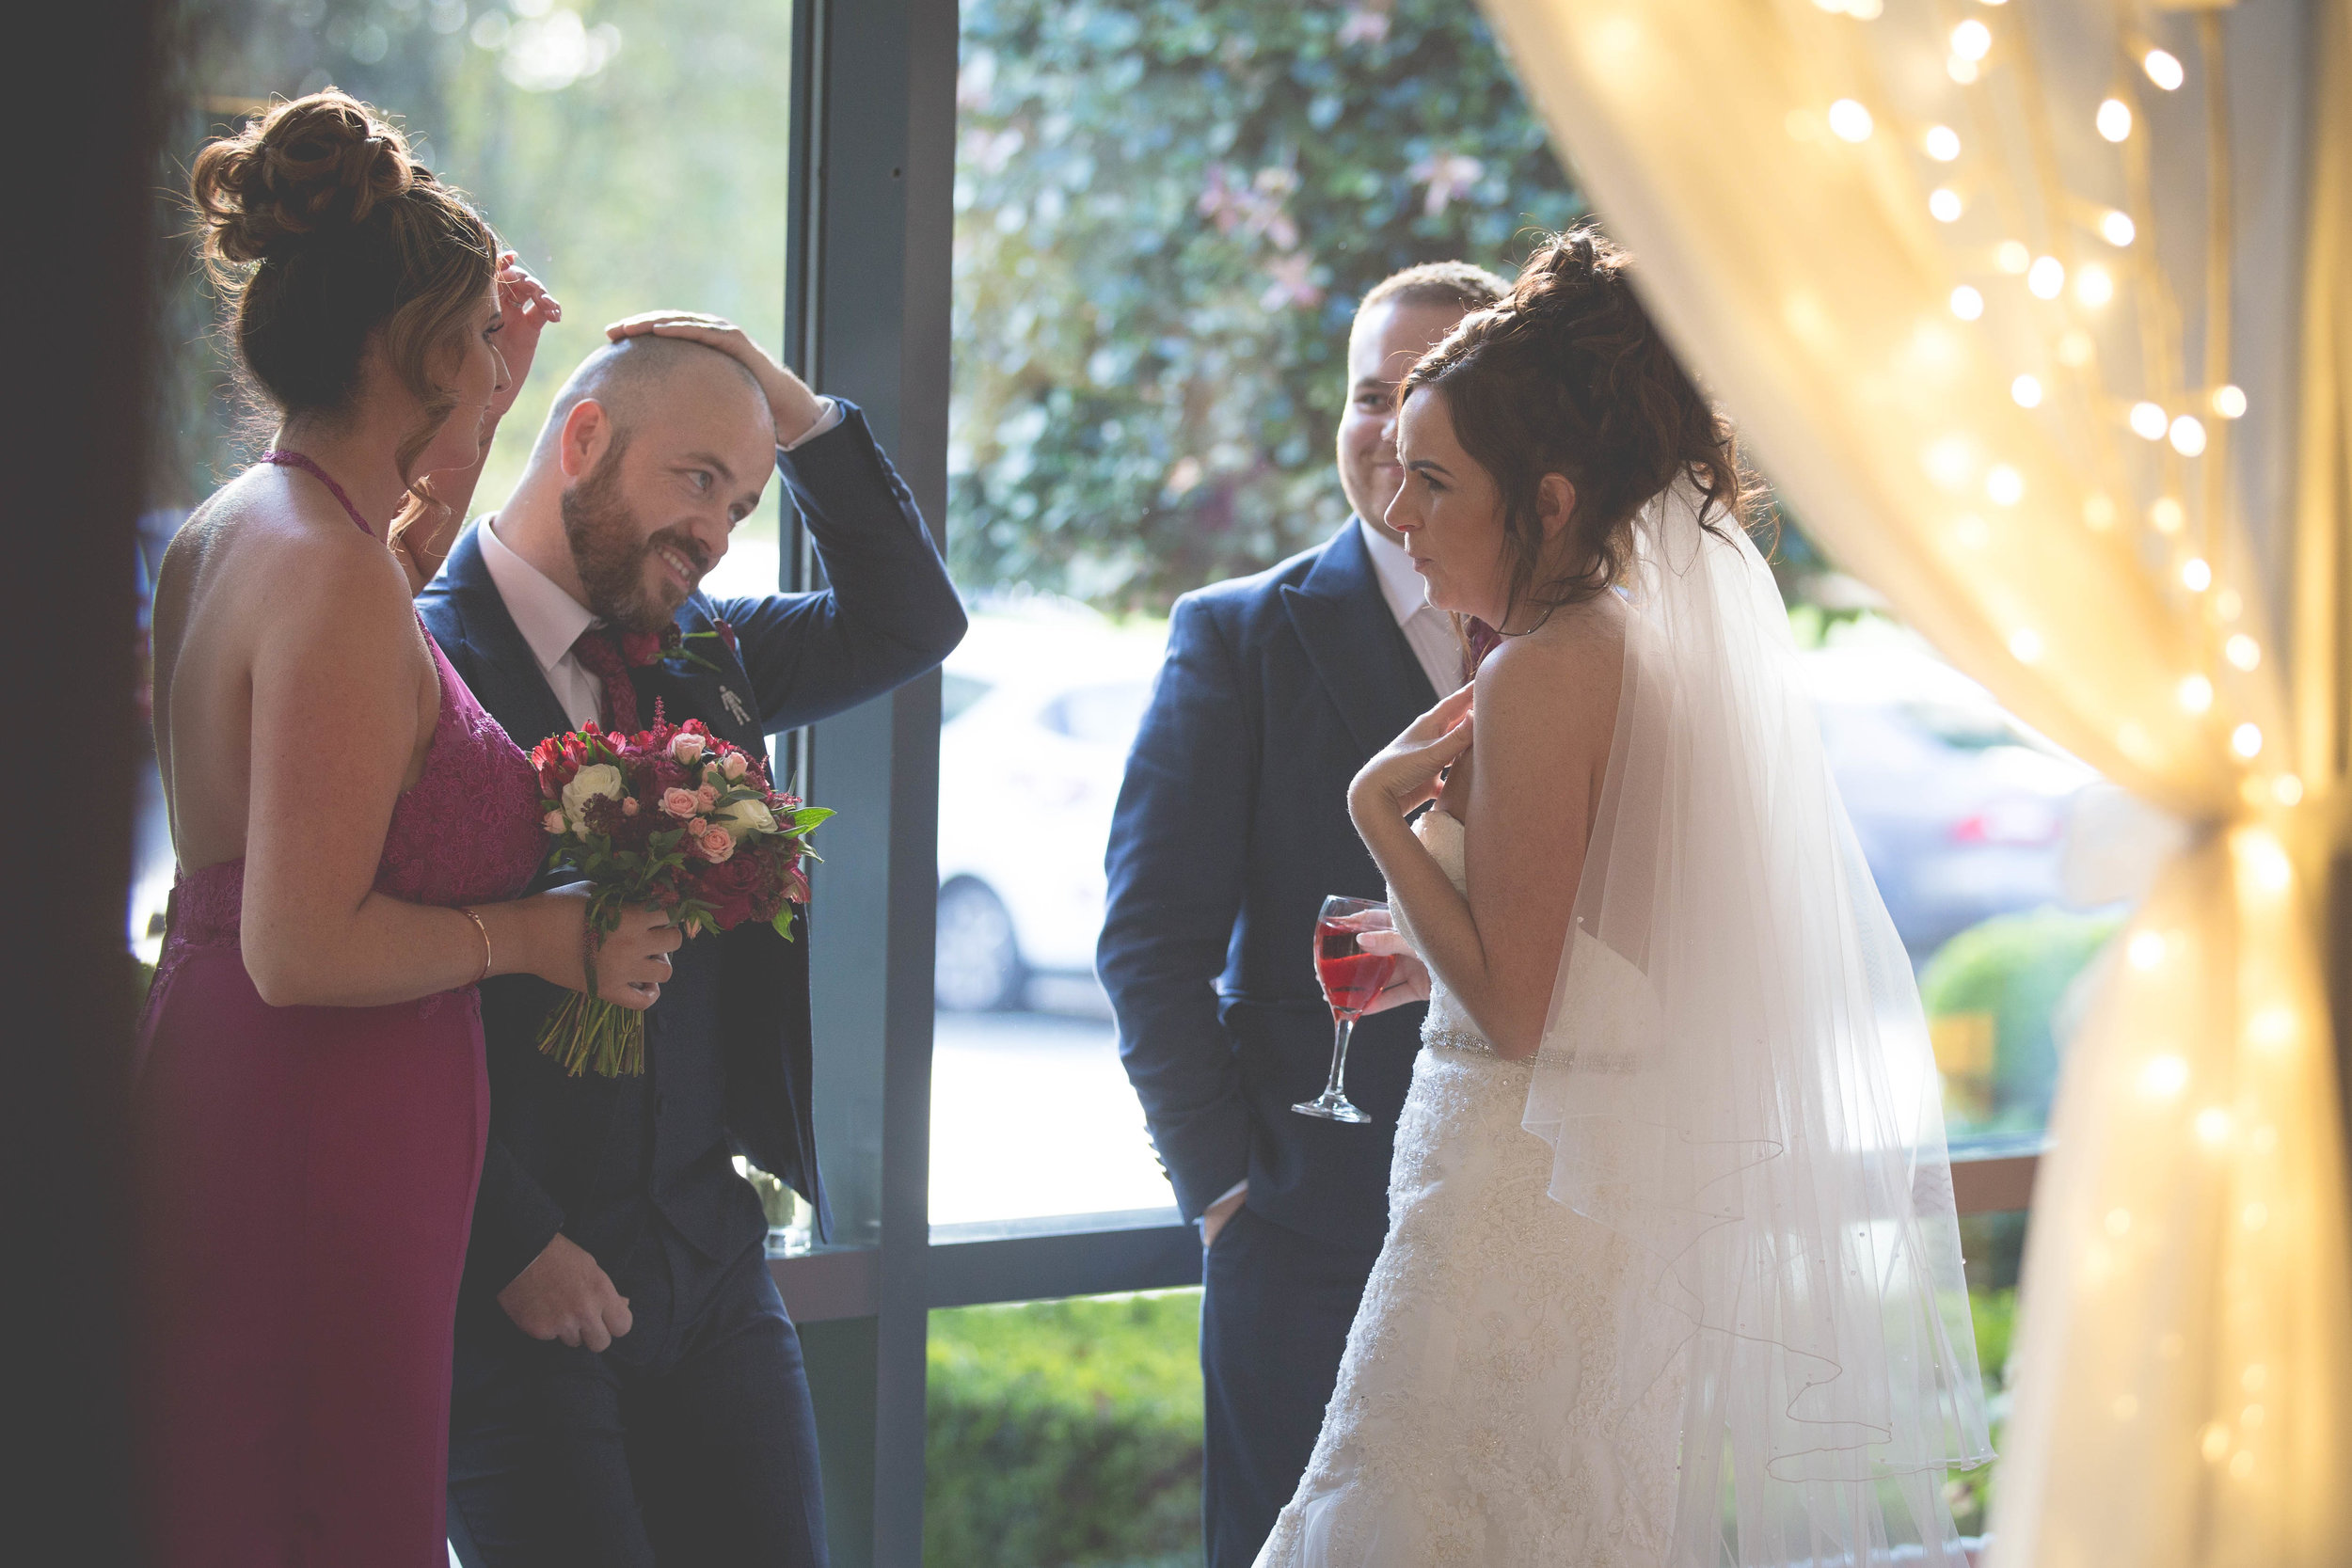 Aisling & Andy - Reception-60.jpg